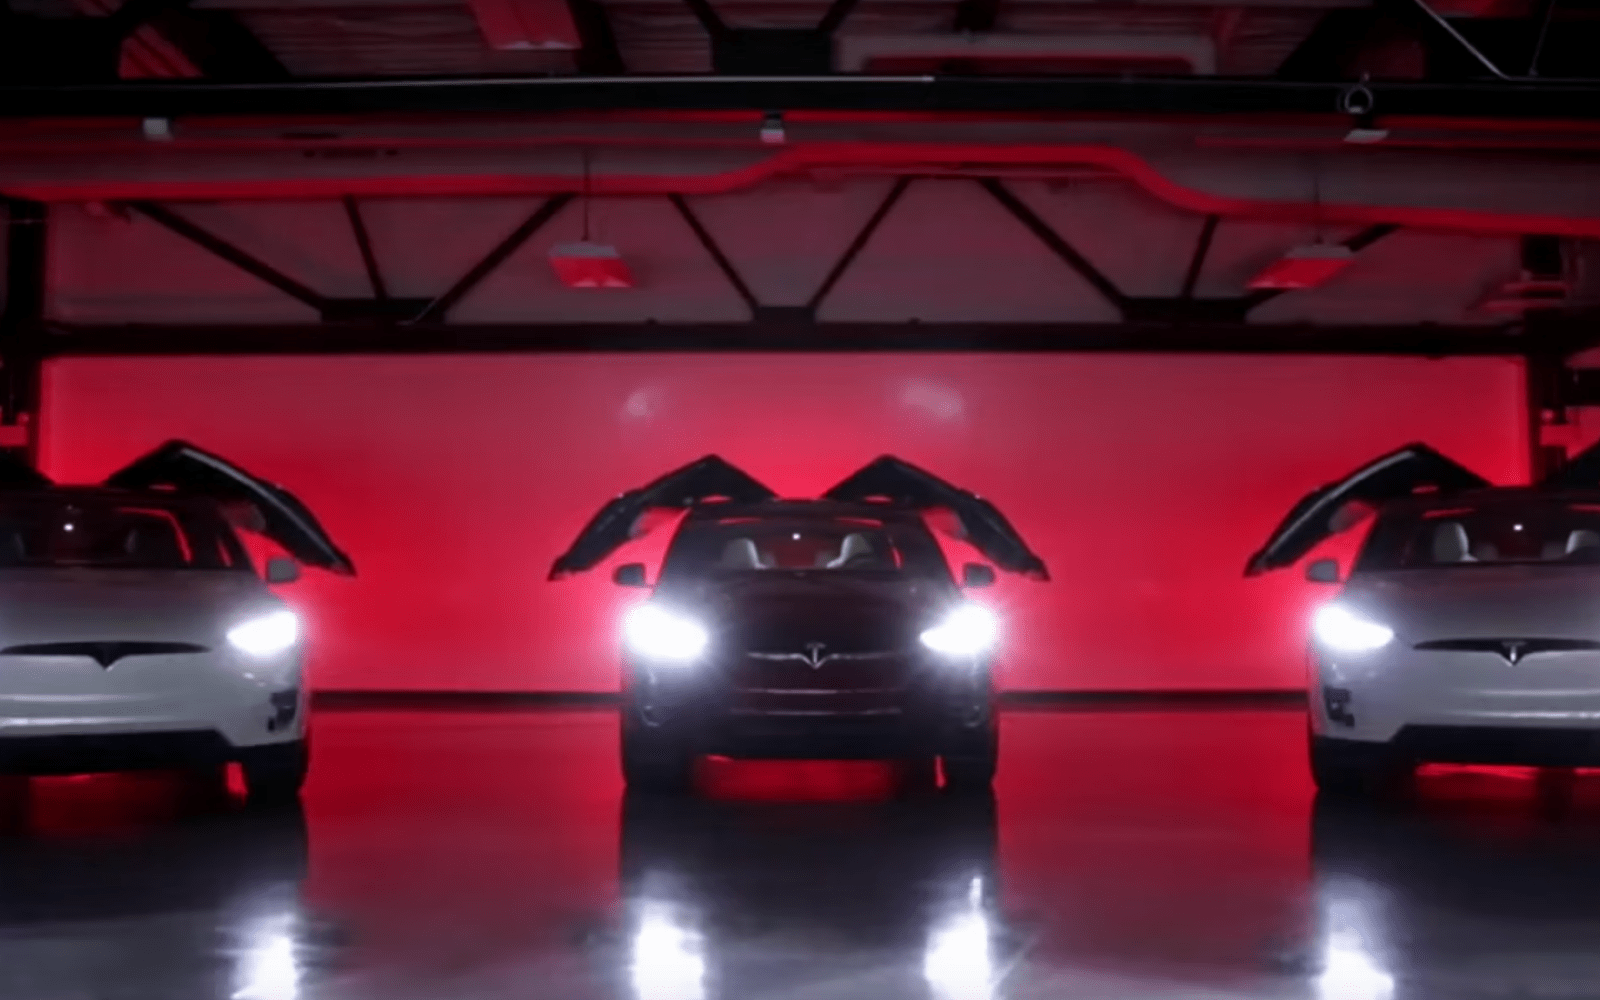 Tesla Hides Xmasthemed Easter Egg In Its Latest Update Model X - Car light show